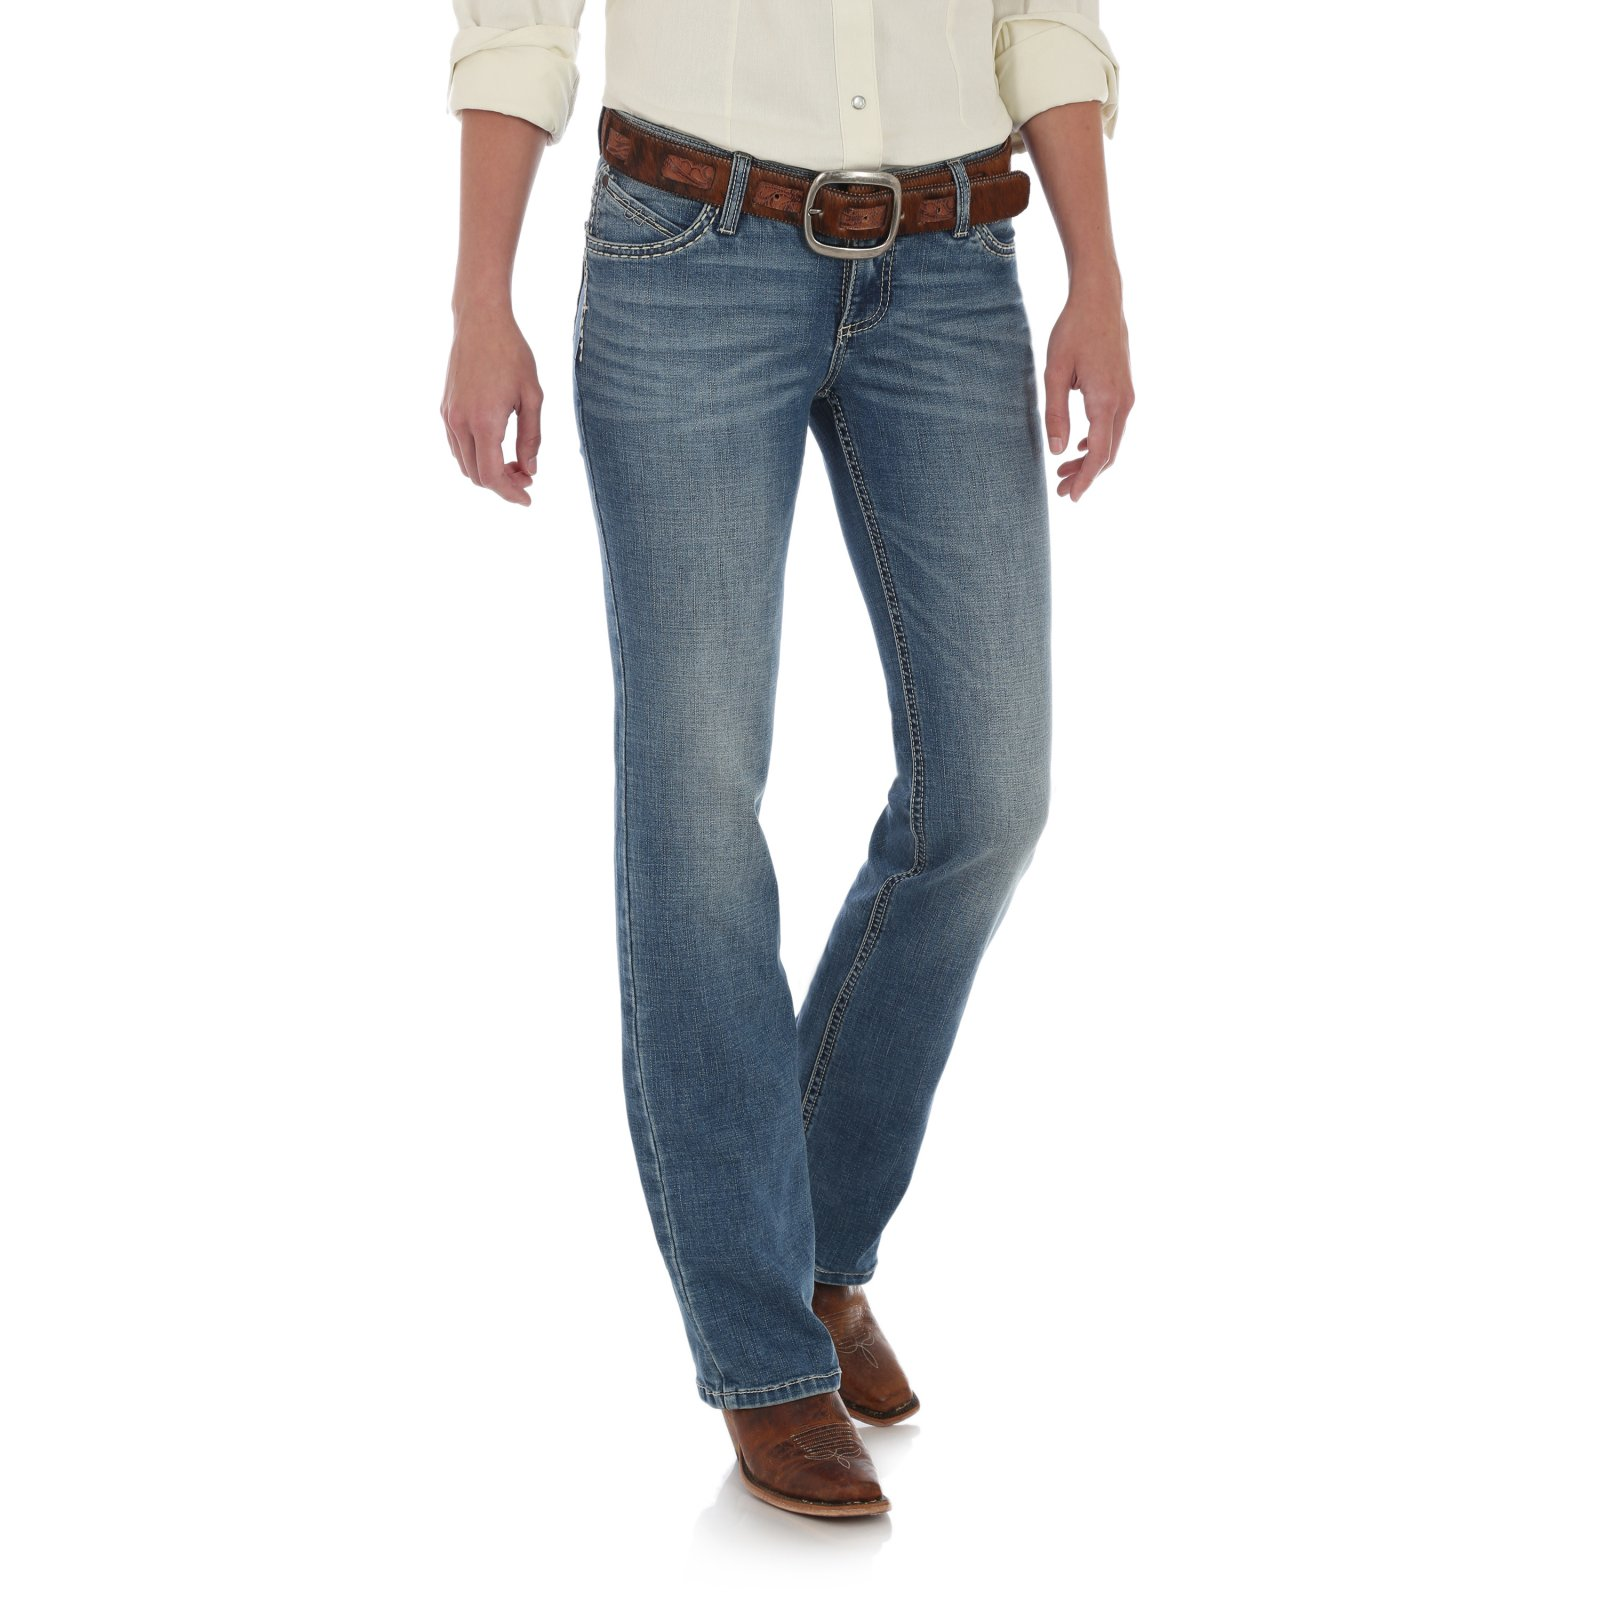 Ladies Shiloh Ultimate Riding Jean from Wrangler-Red Rock